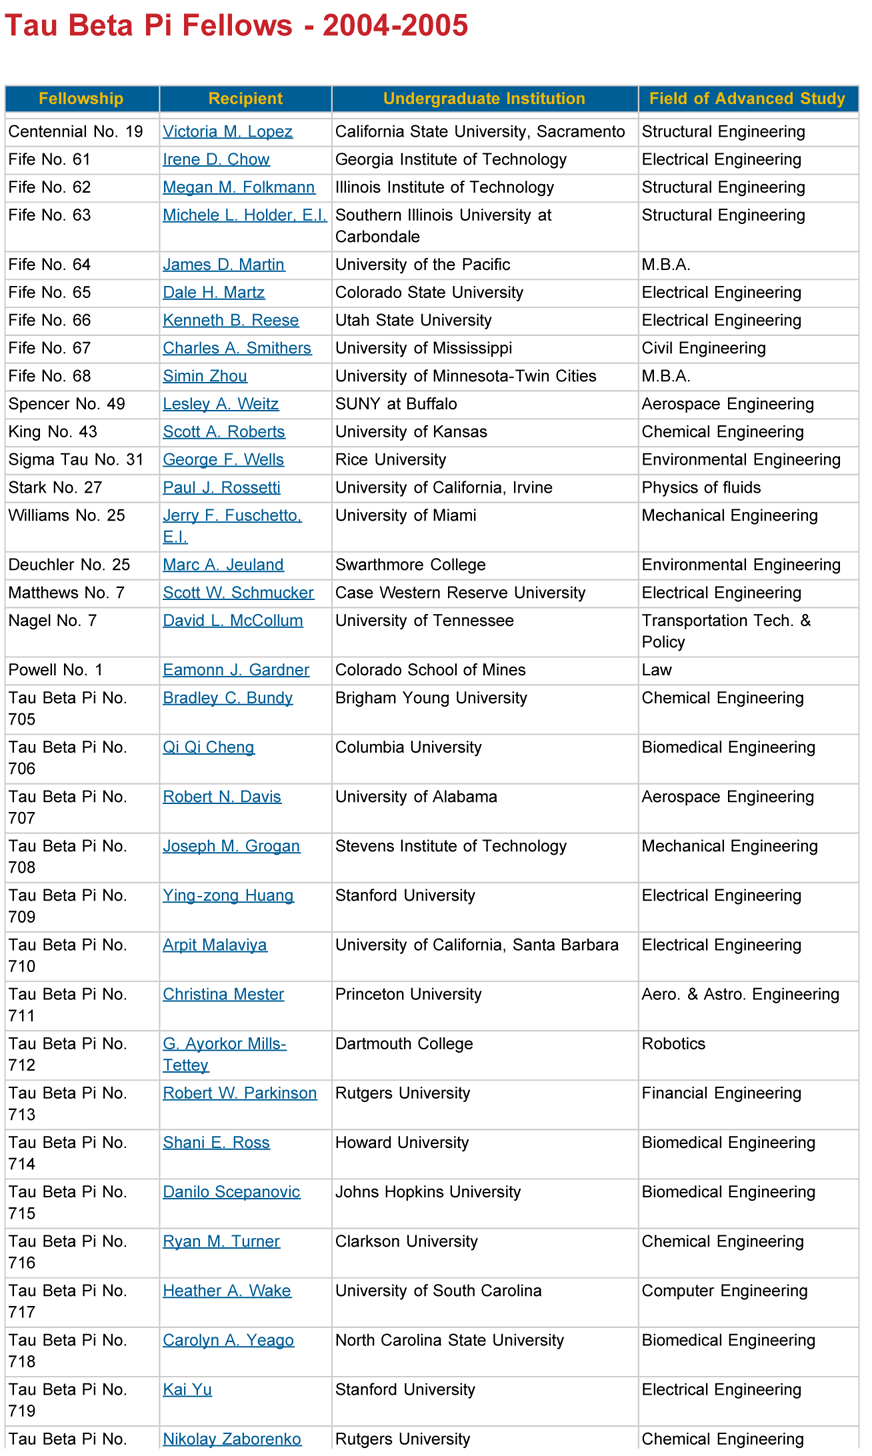 tau beta pi fellowships fellows information by year